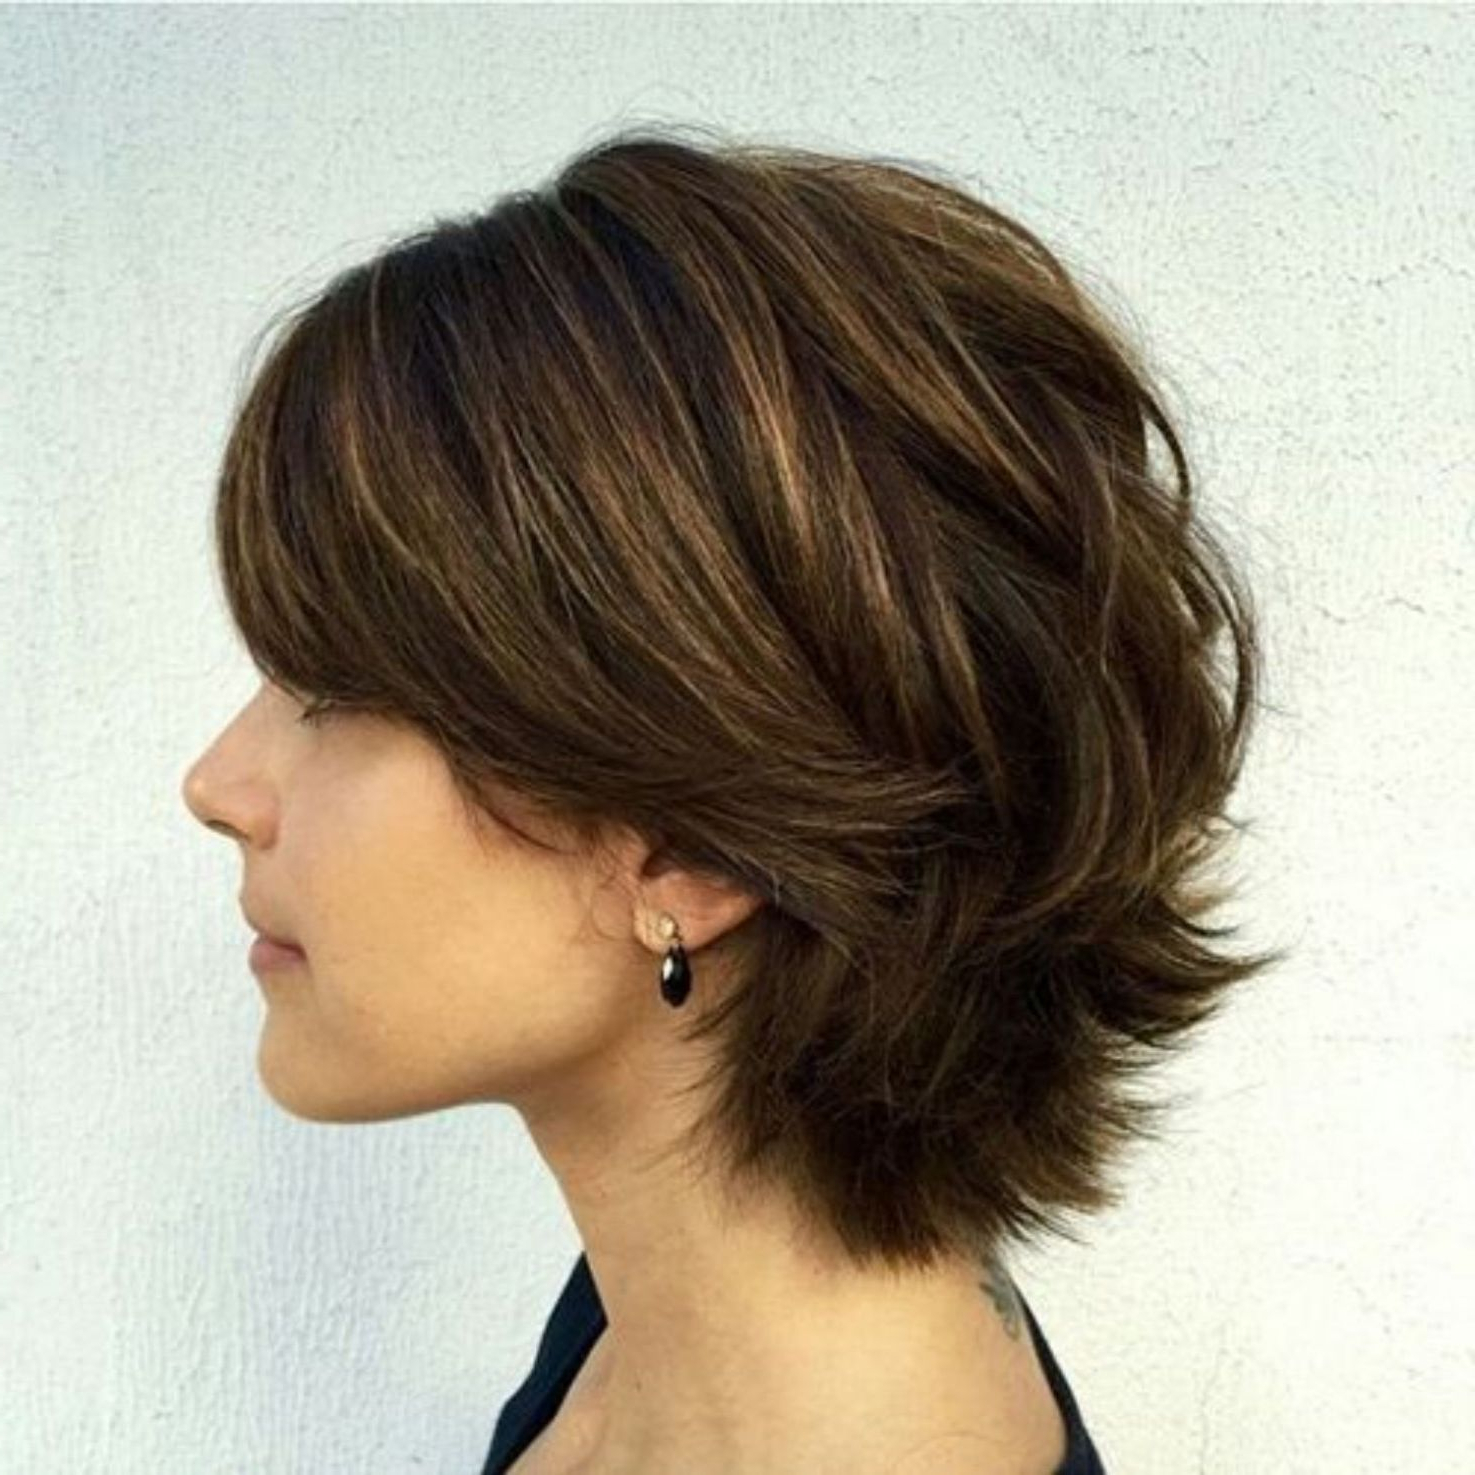 60 Classy Short Haircuts And Hairstyles For Thick Hair In 2018 With Medium Short Haircuts For Thick Hair (Gallery 23 of 25)